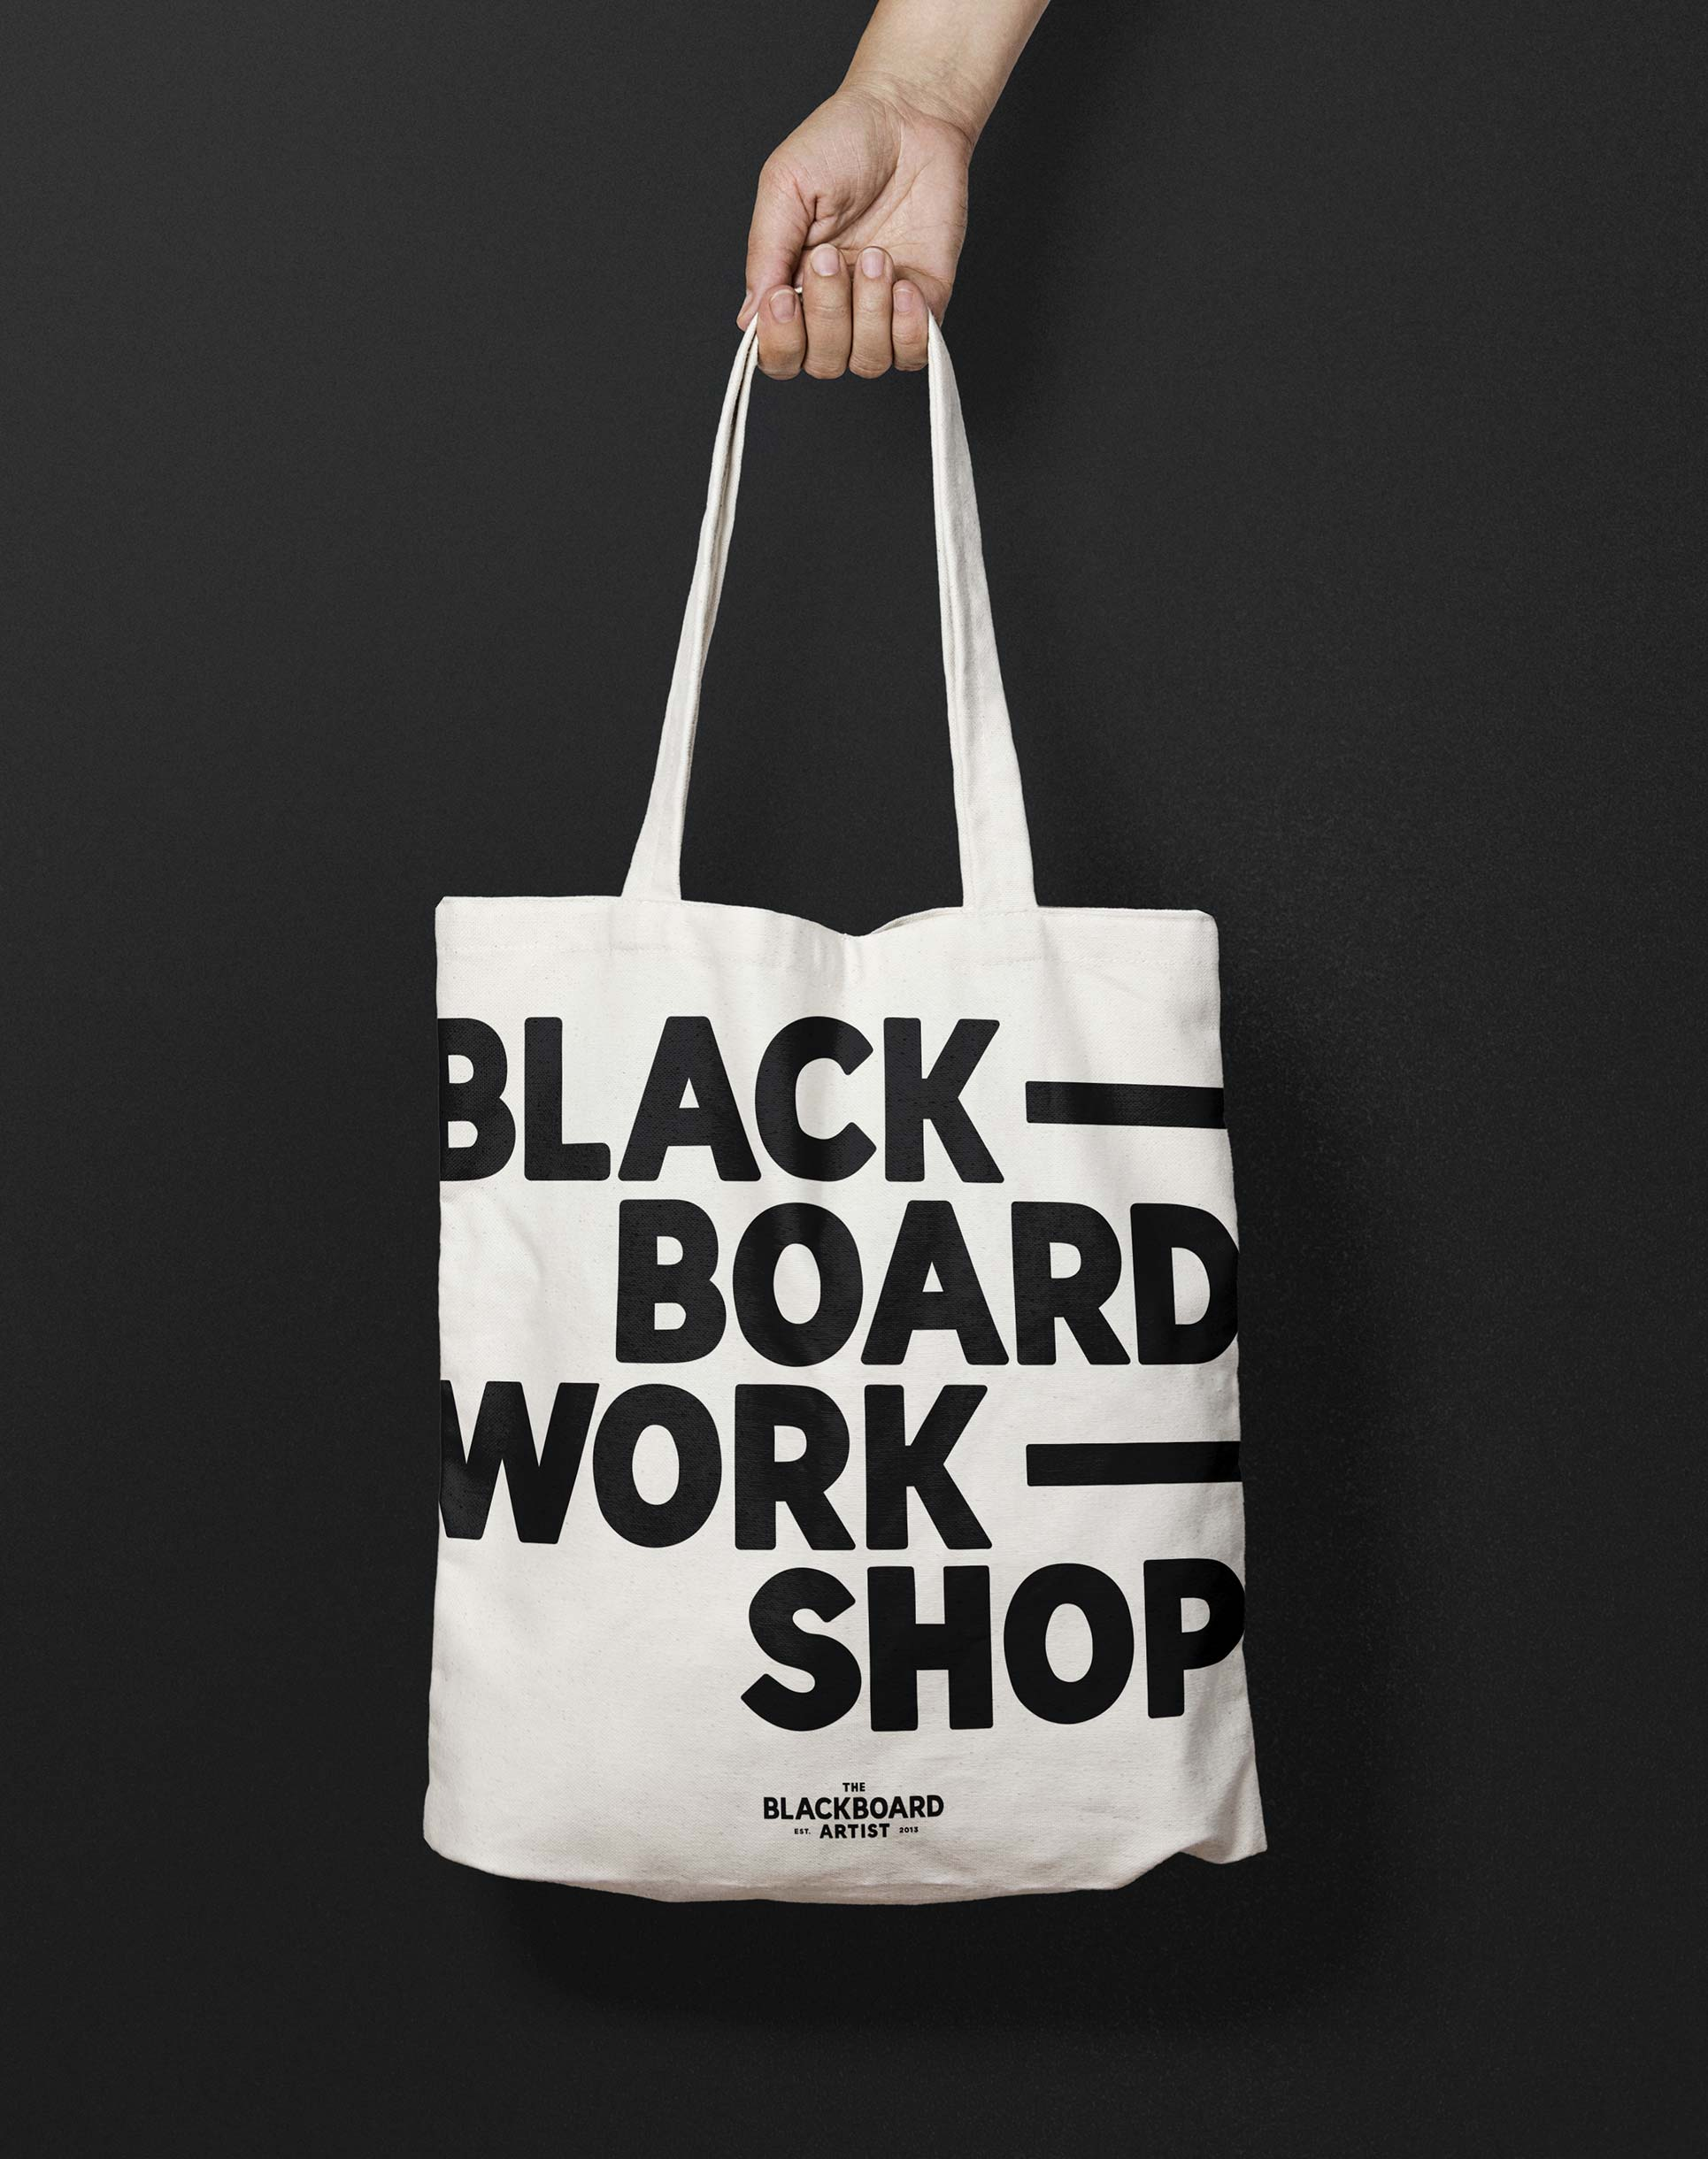 The Blackboard tote bag